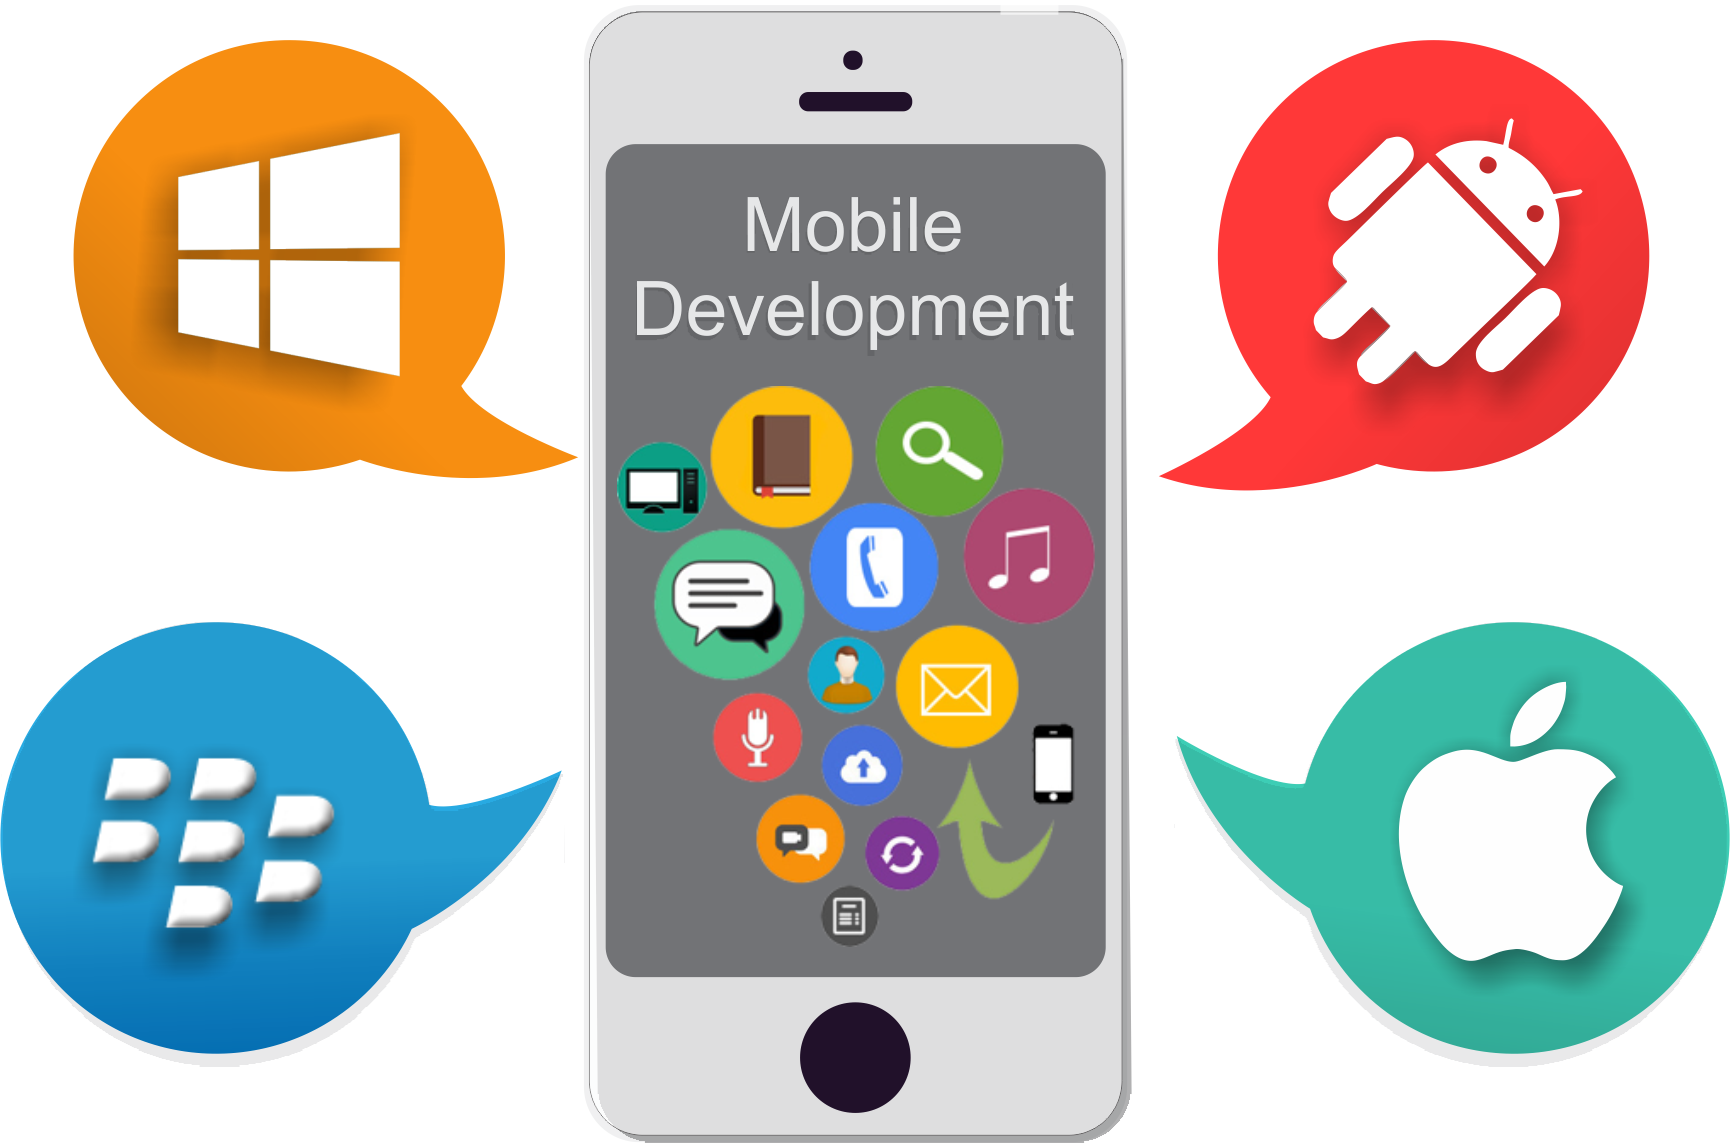 Discover the Reasons to Use Mobile Application Development by Most Companies - Image 2